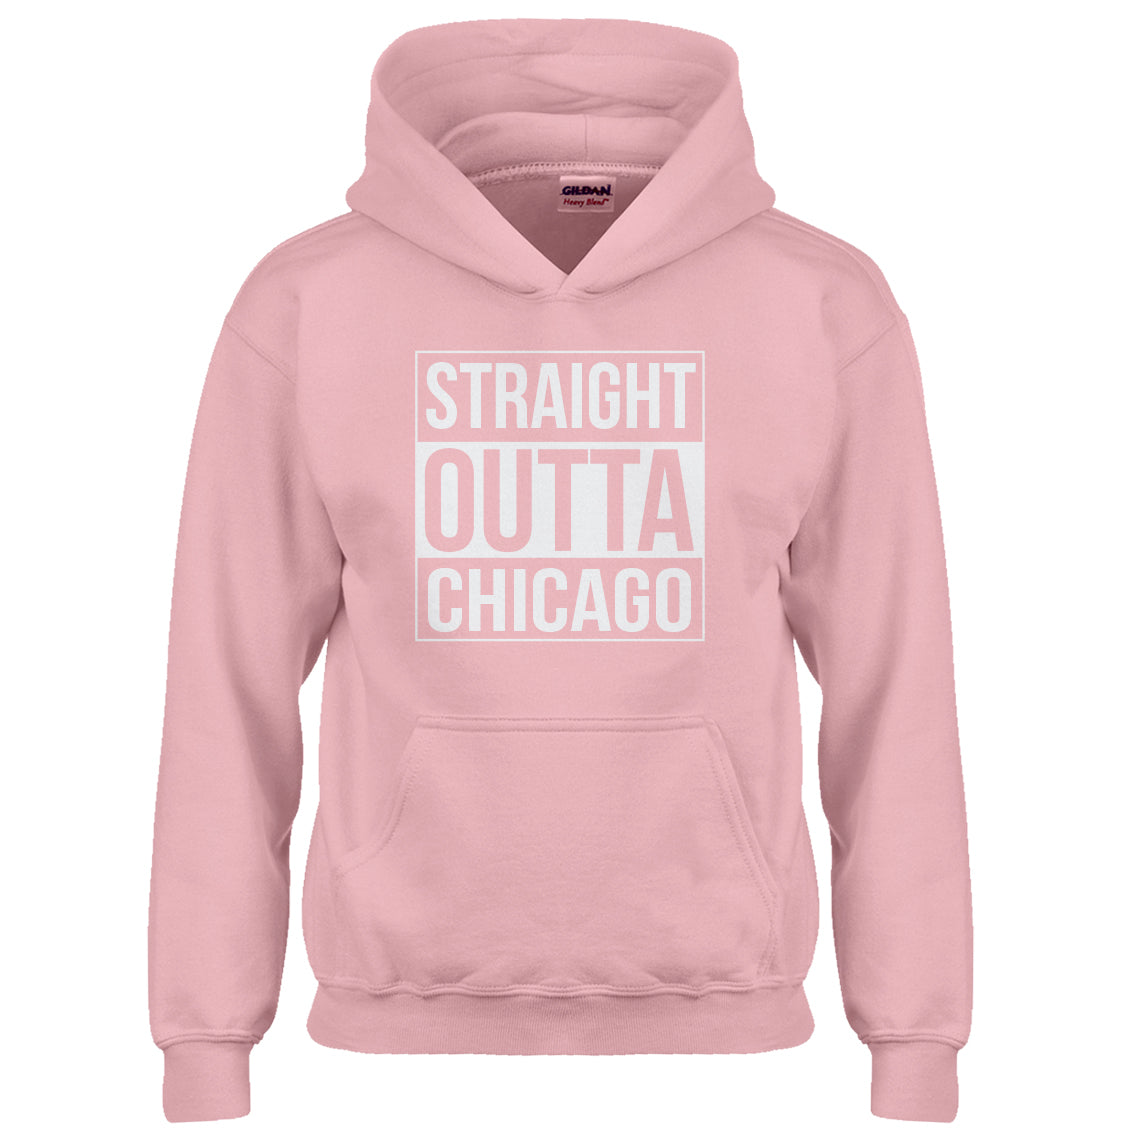 Indica Plateau Youth Straight Outta Chicago Kids Hoodie